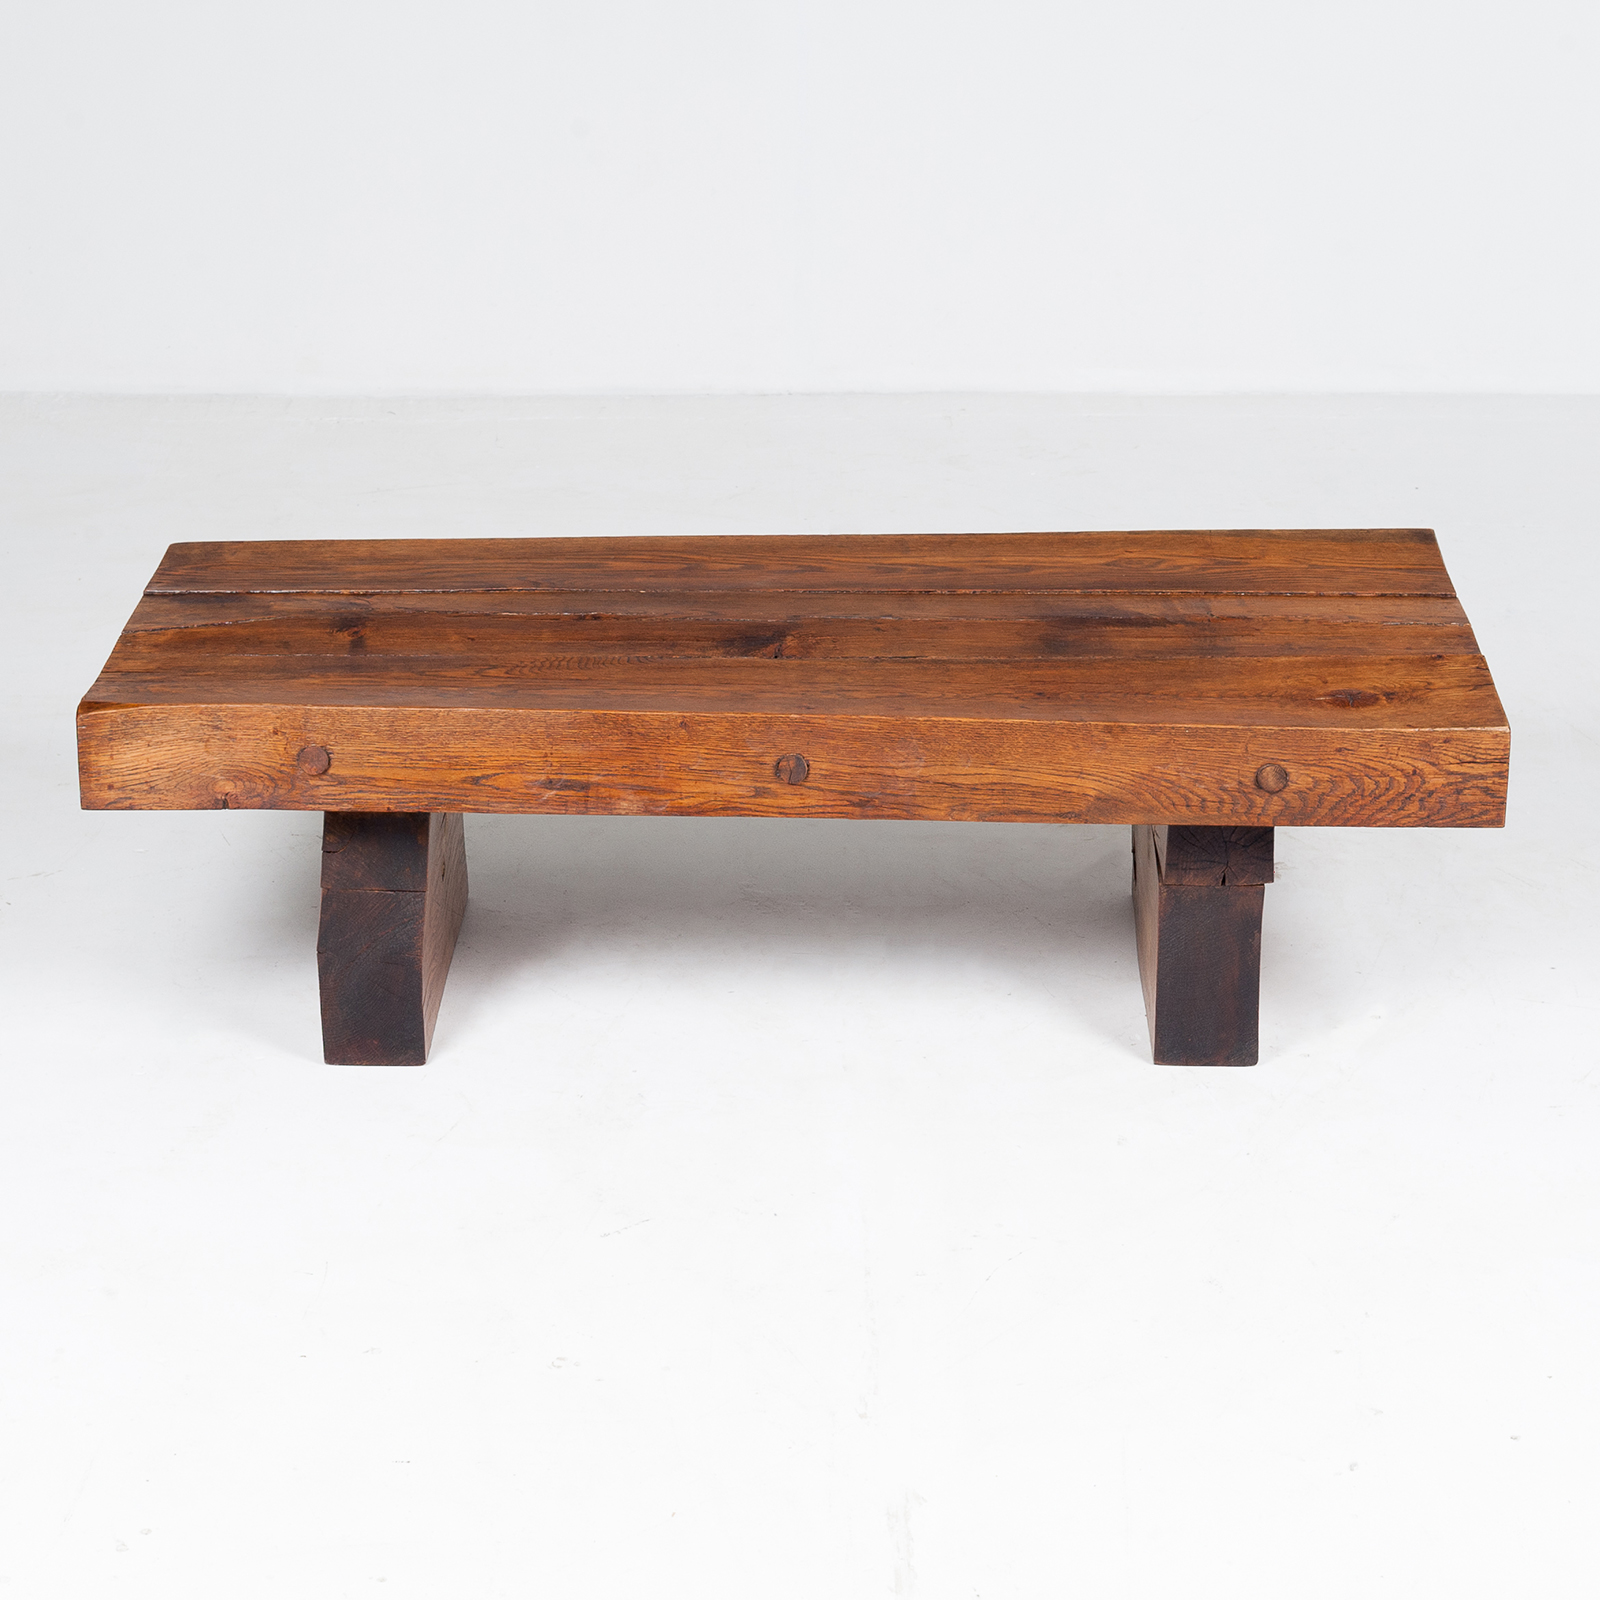 Brutalist Style Coffee Table In Timber, 1960s, The Netherlands 796